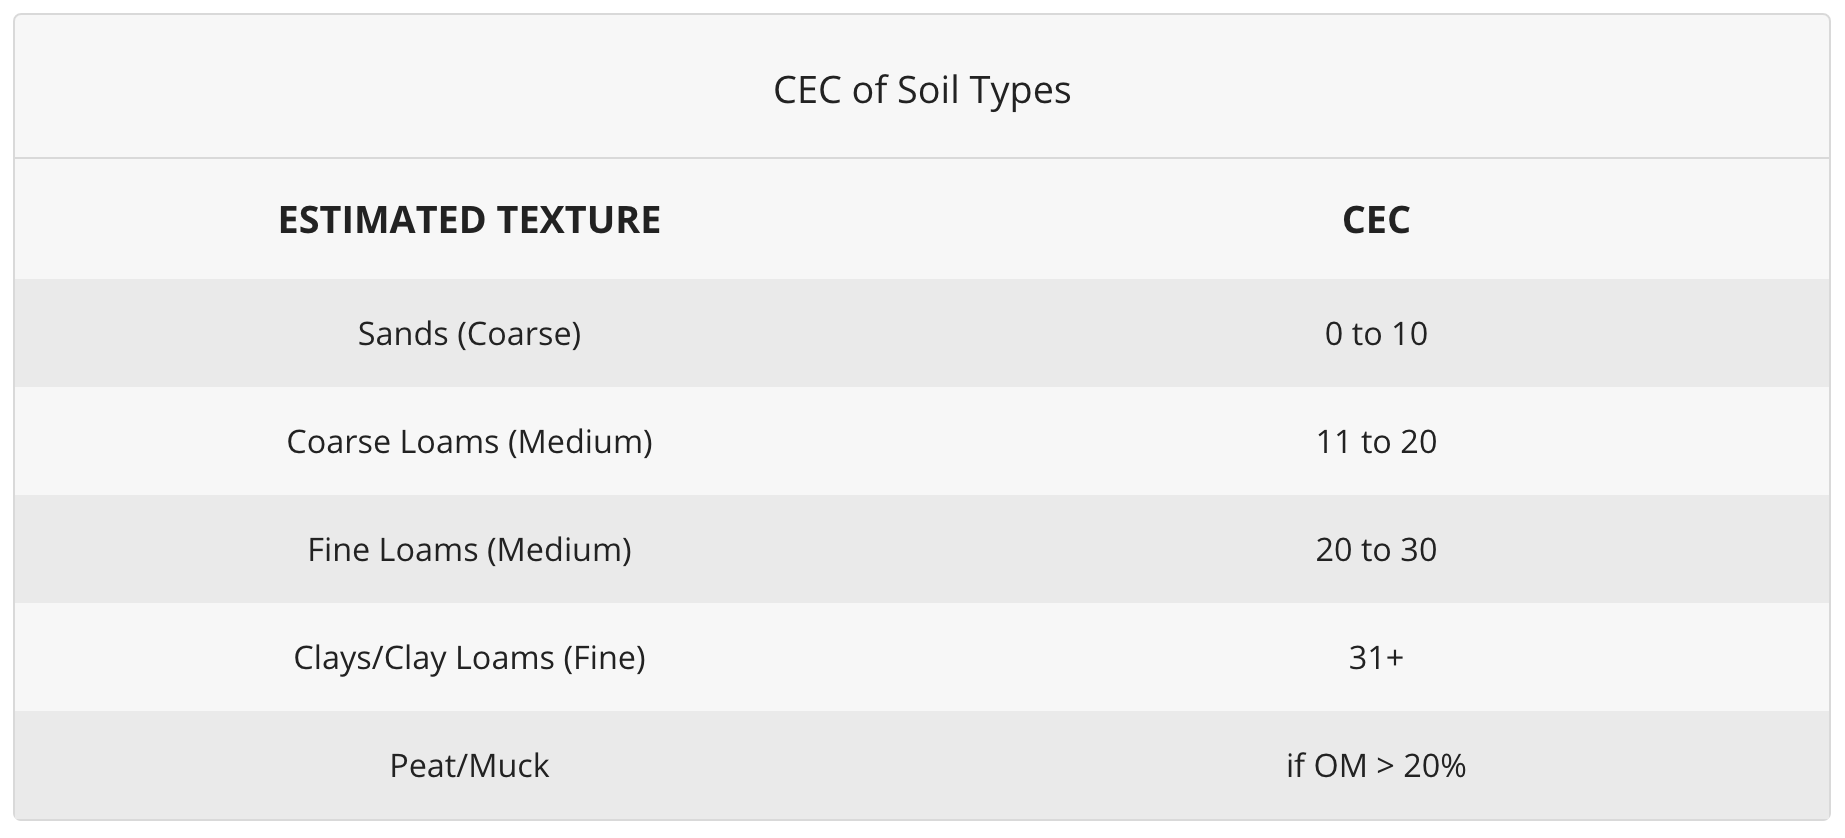 CEC of Soil Types